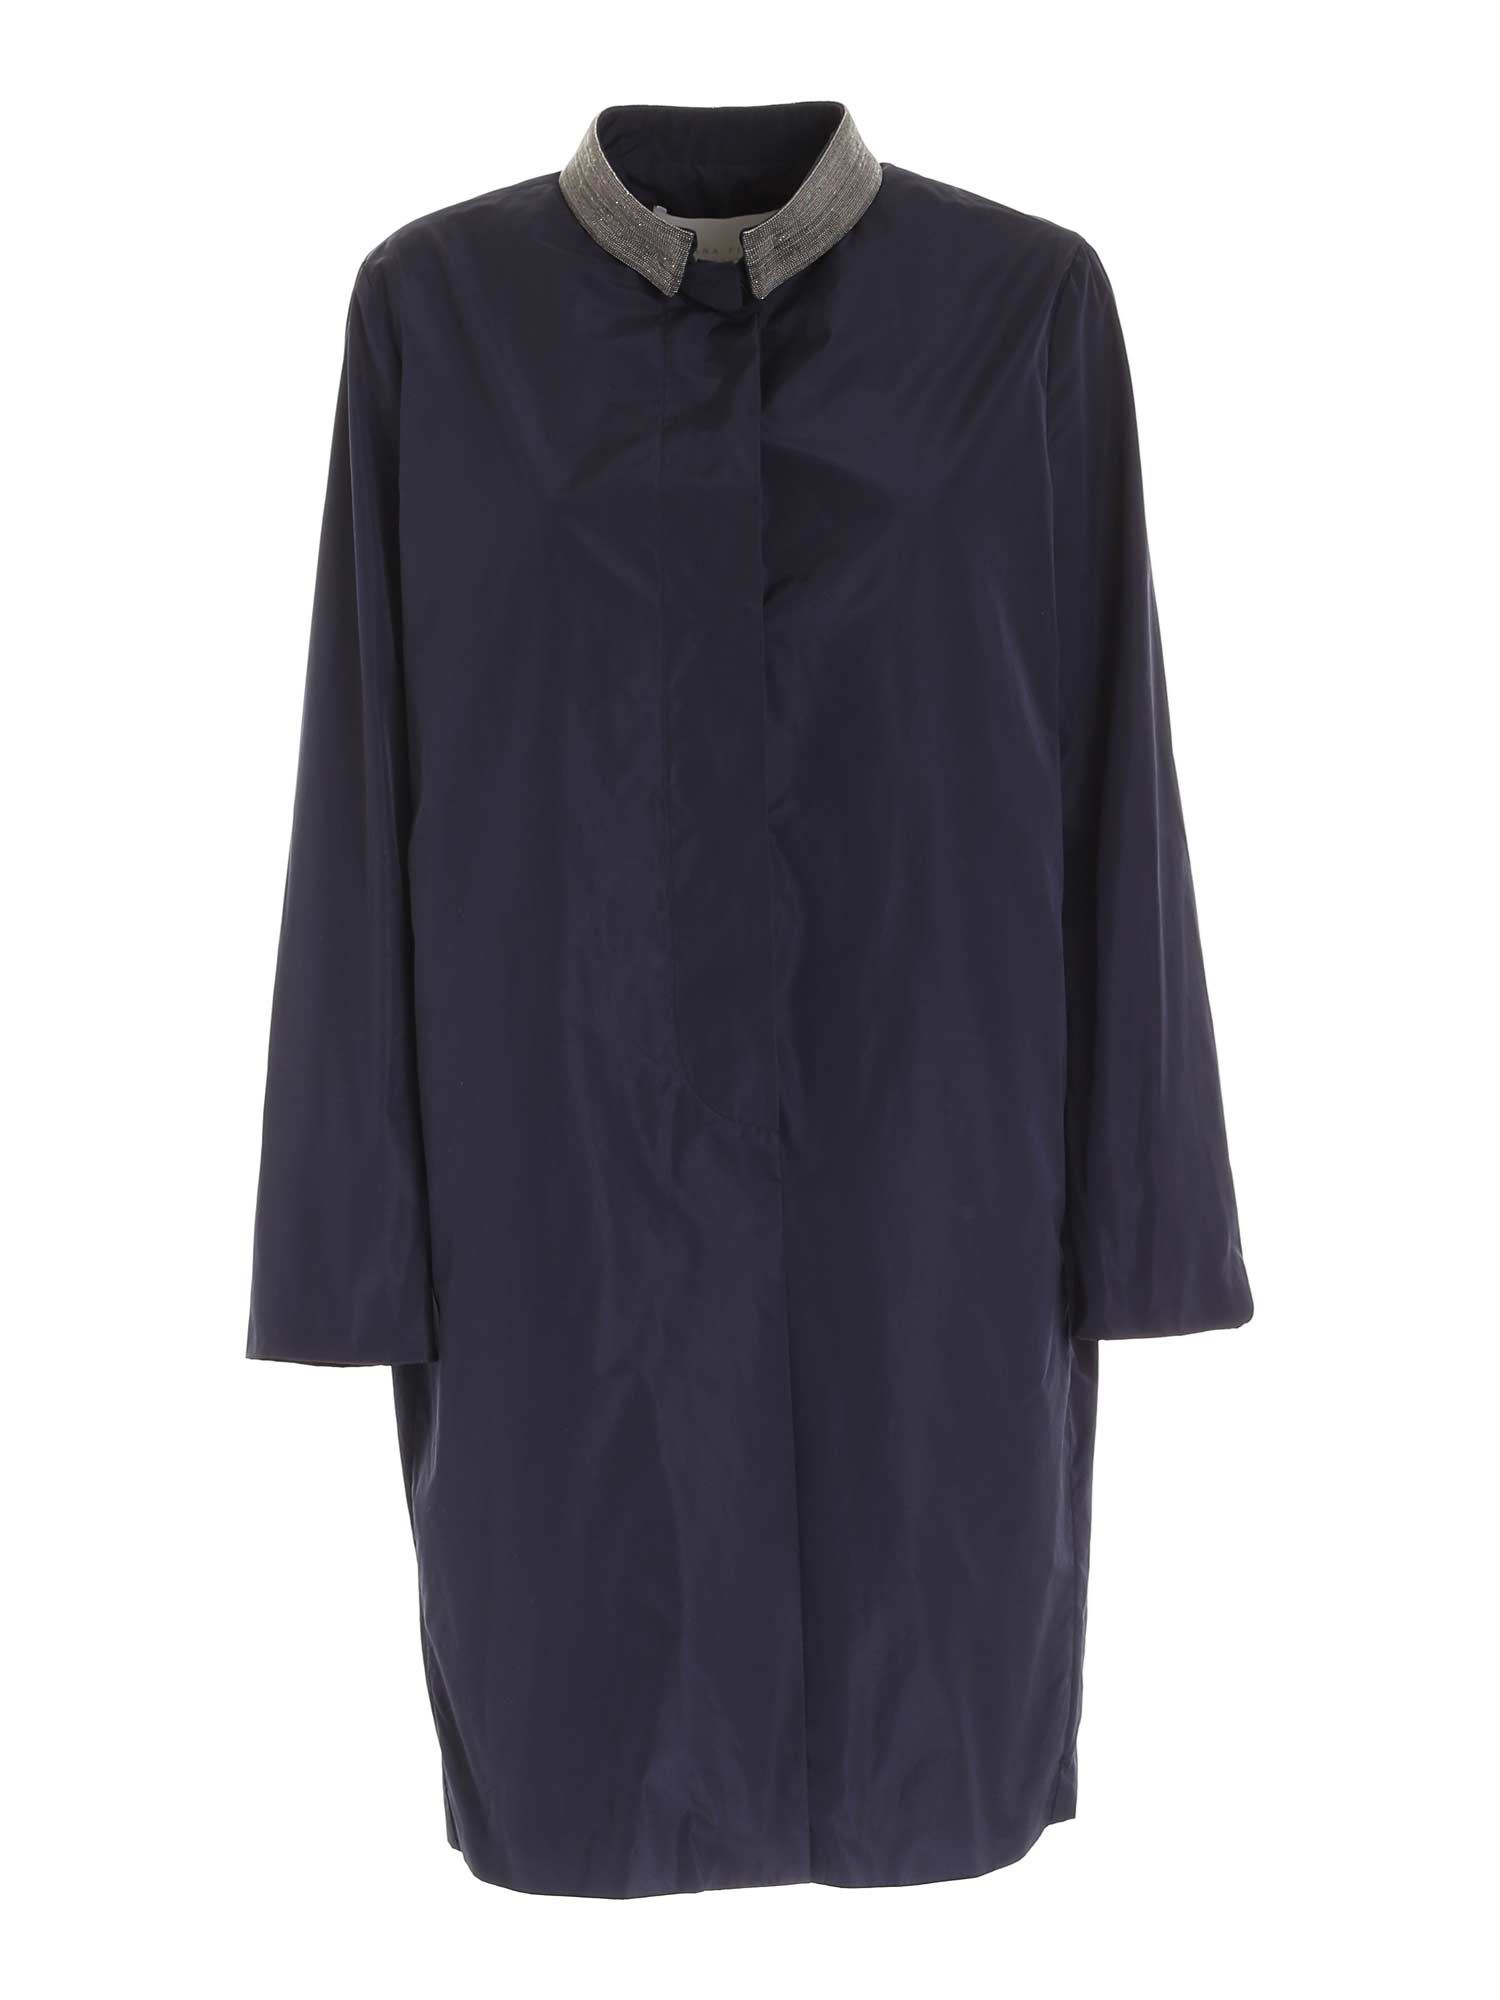 Fabiana Filippi COAT WITH EMBELLISHED COLLAR IN BLUE